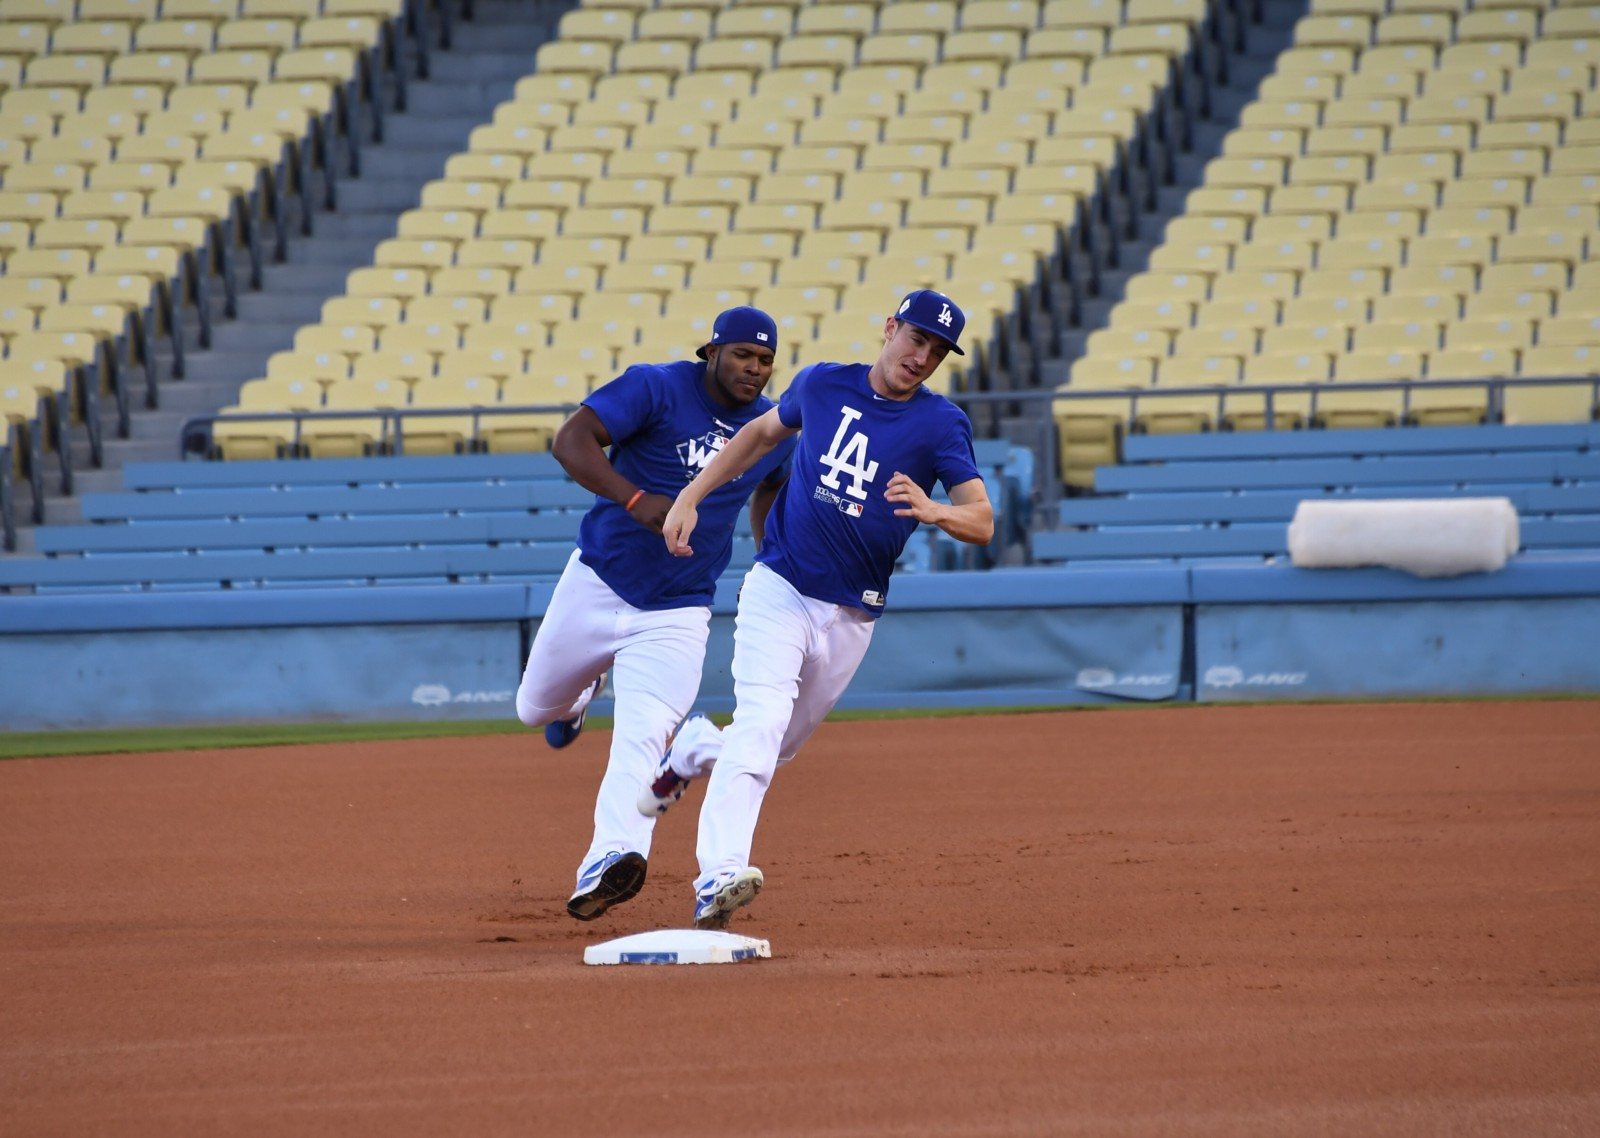 Dodgers World Series opponent brings the offense and